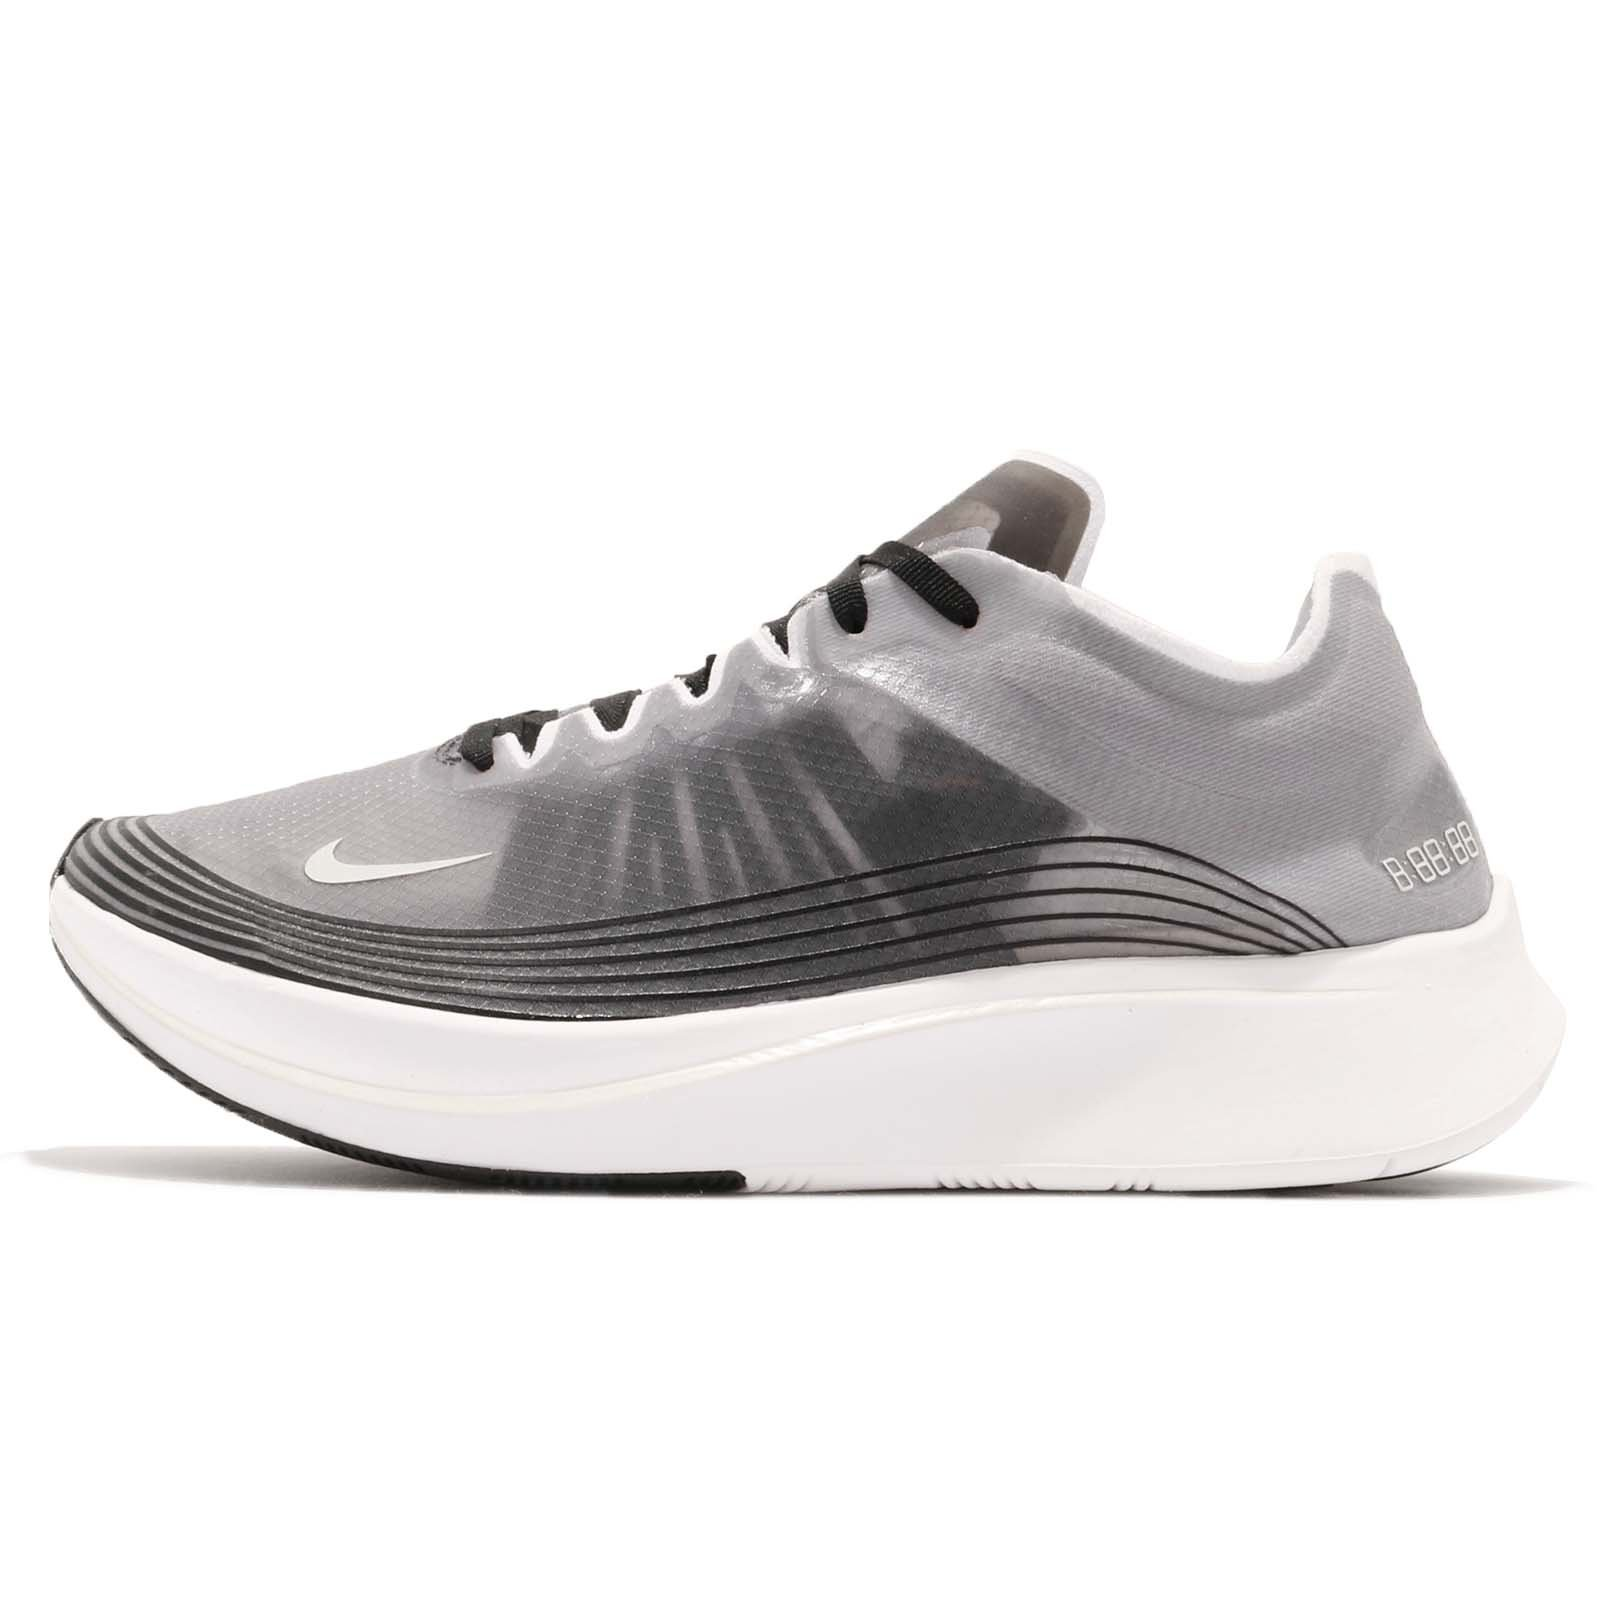 Nike Mens Zoom Fly SP Running Shoes (11 D(M) US) by Nike